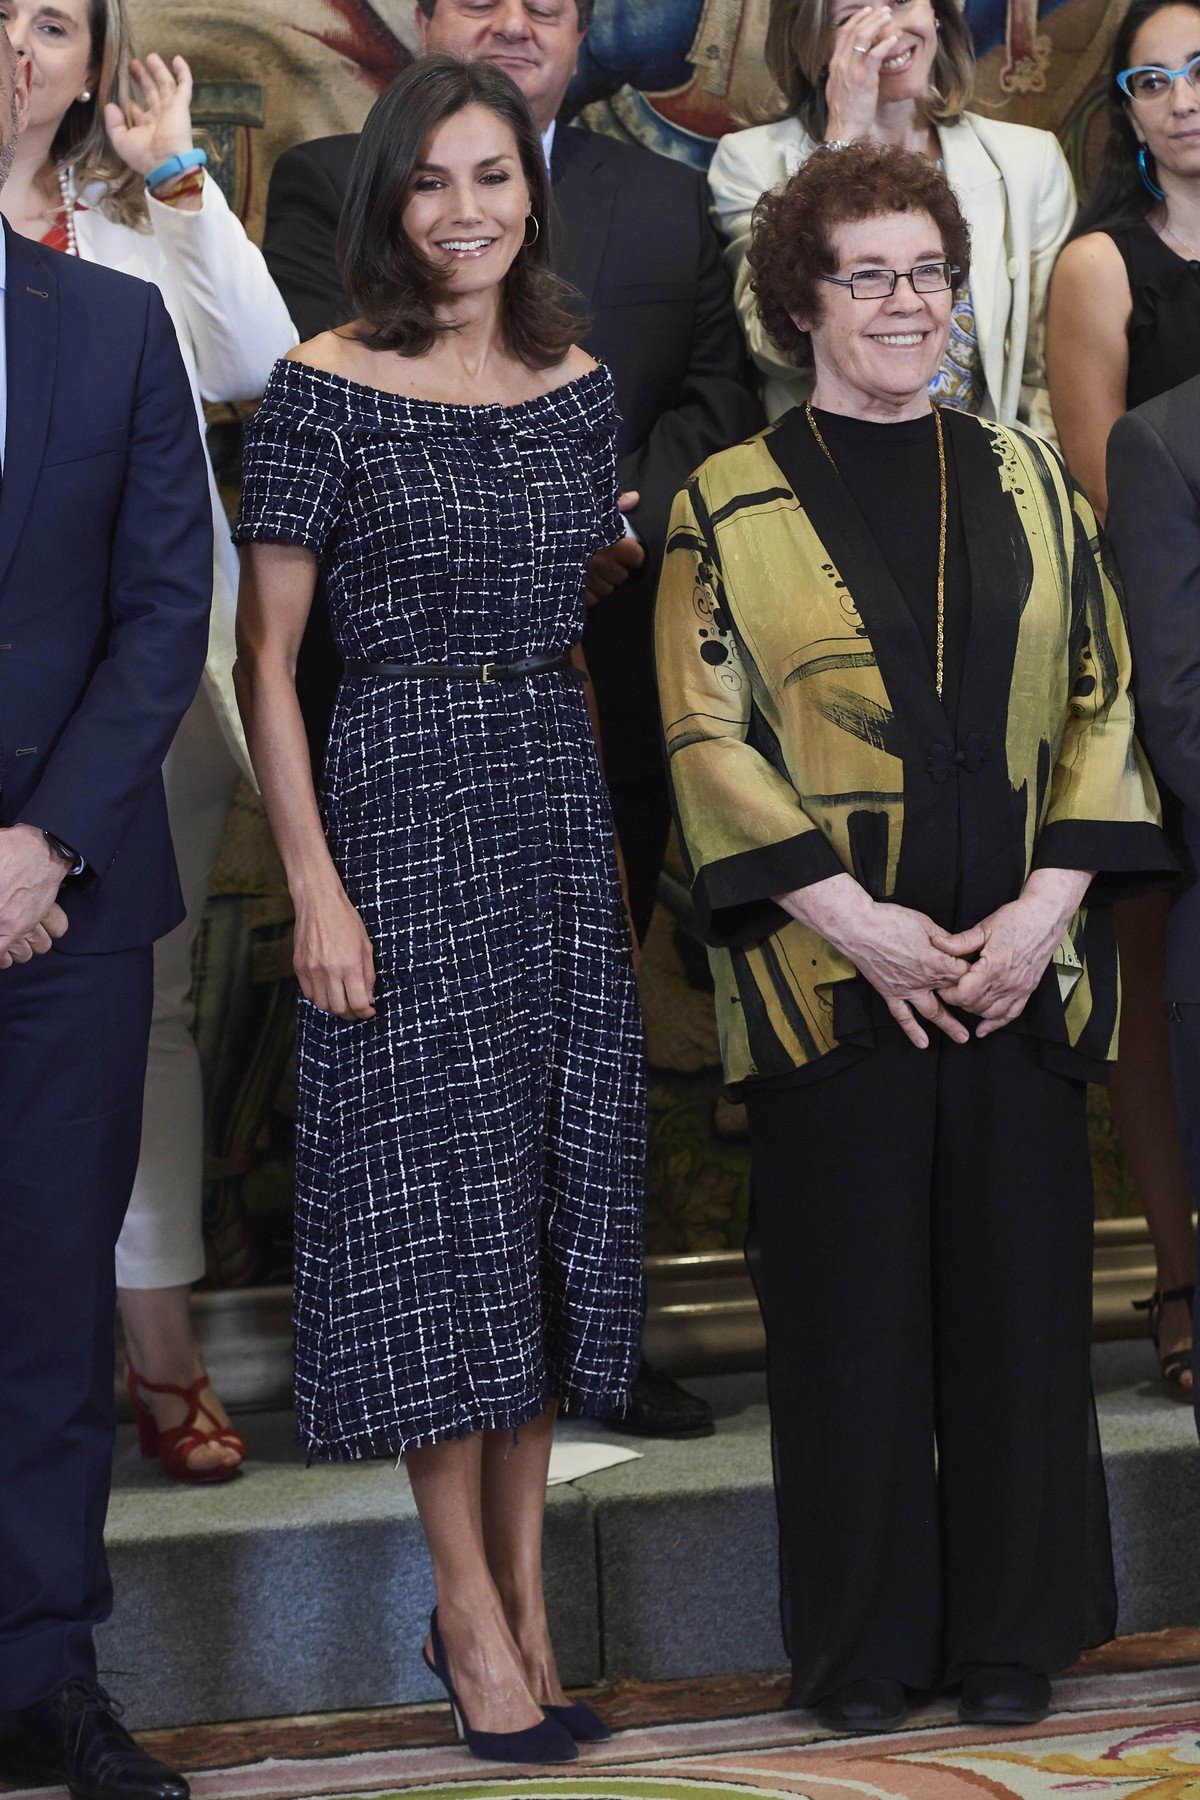 16-07-2019 Queen Letizia during an audience with representatives of the international congress for social communication studies who particpated in the ÔÕWomennow #Make history2019ÕÕ project IAMCR/AIECS in Madrid.  No Spain  ' PPE/Thorton //THORTON-PPE_PPE19071606/1907161219/Credit:PPE/Thorton/SIPA/1907161221, Image: 459043138, License: Rights-managed, Restrictions: , Model Release: no, Credit line: Profimedia, TEMP Sipa Press